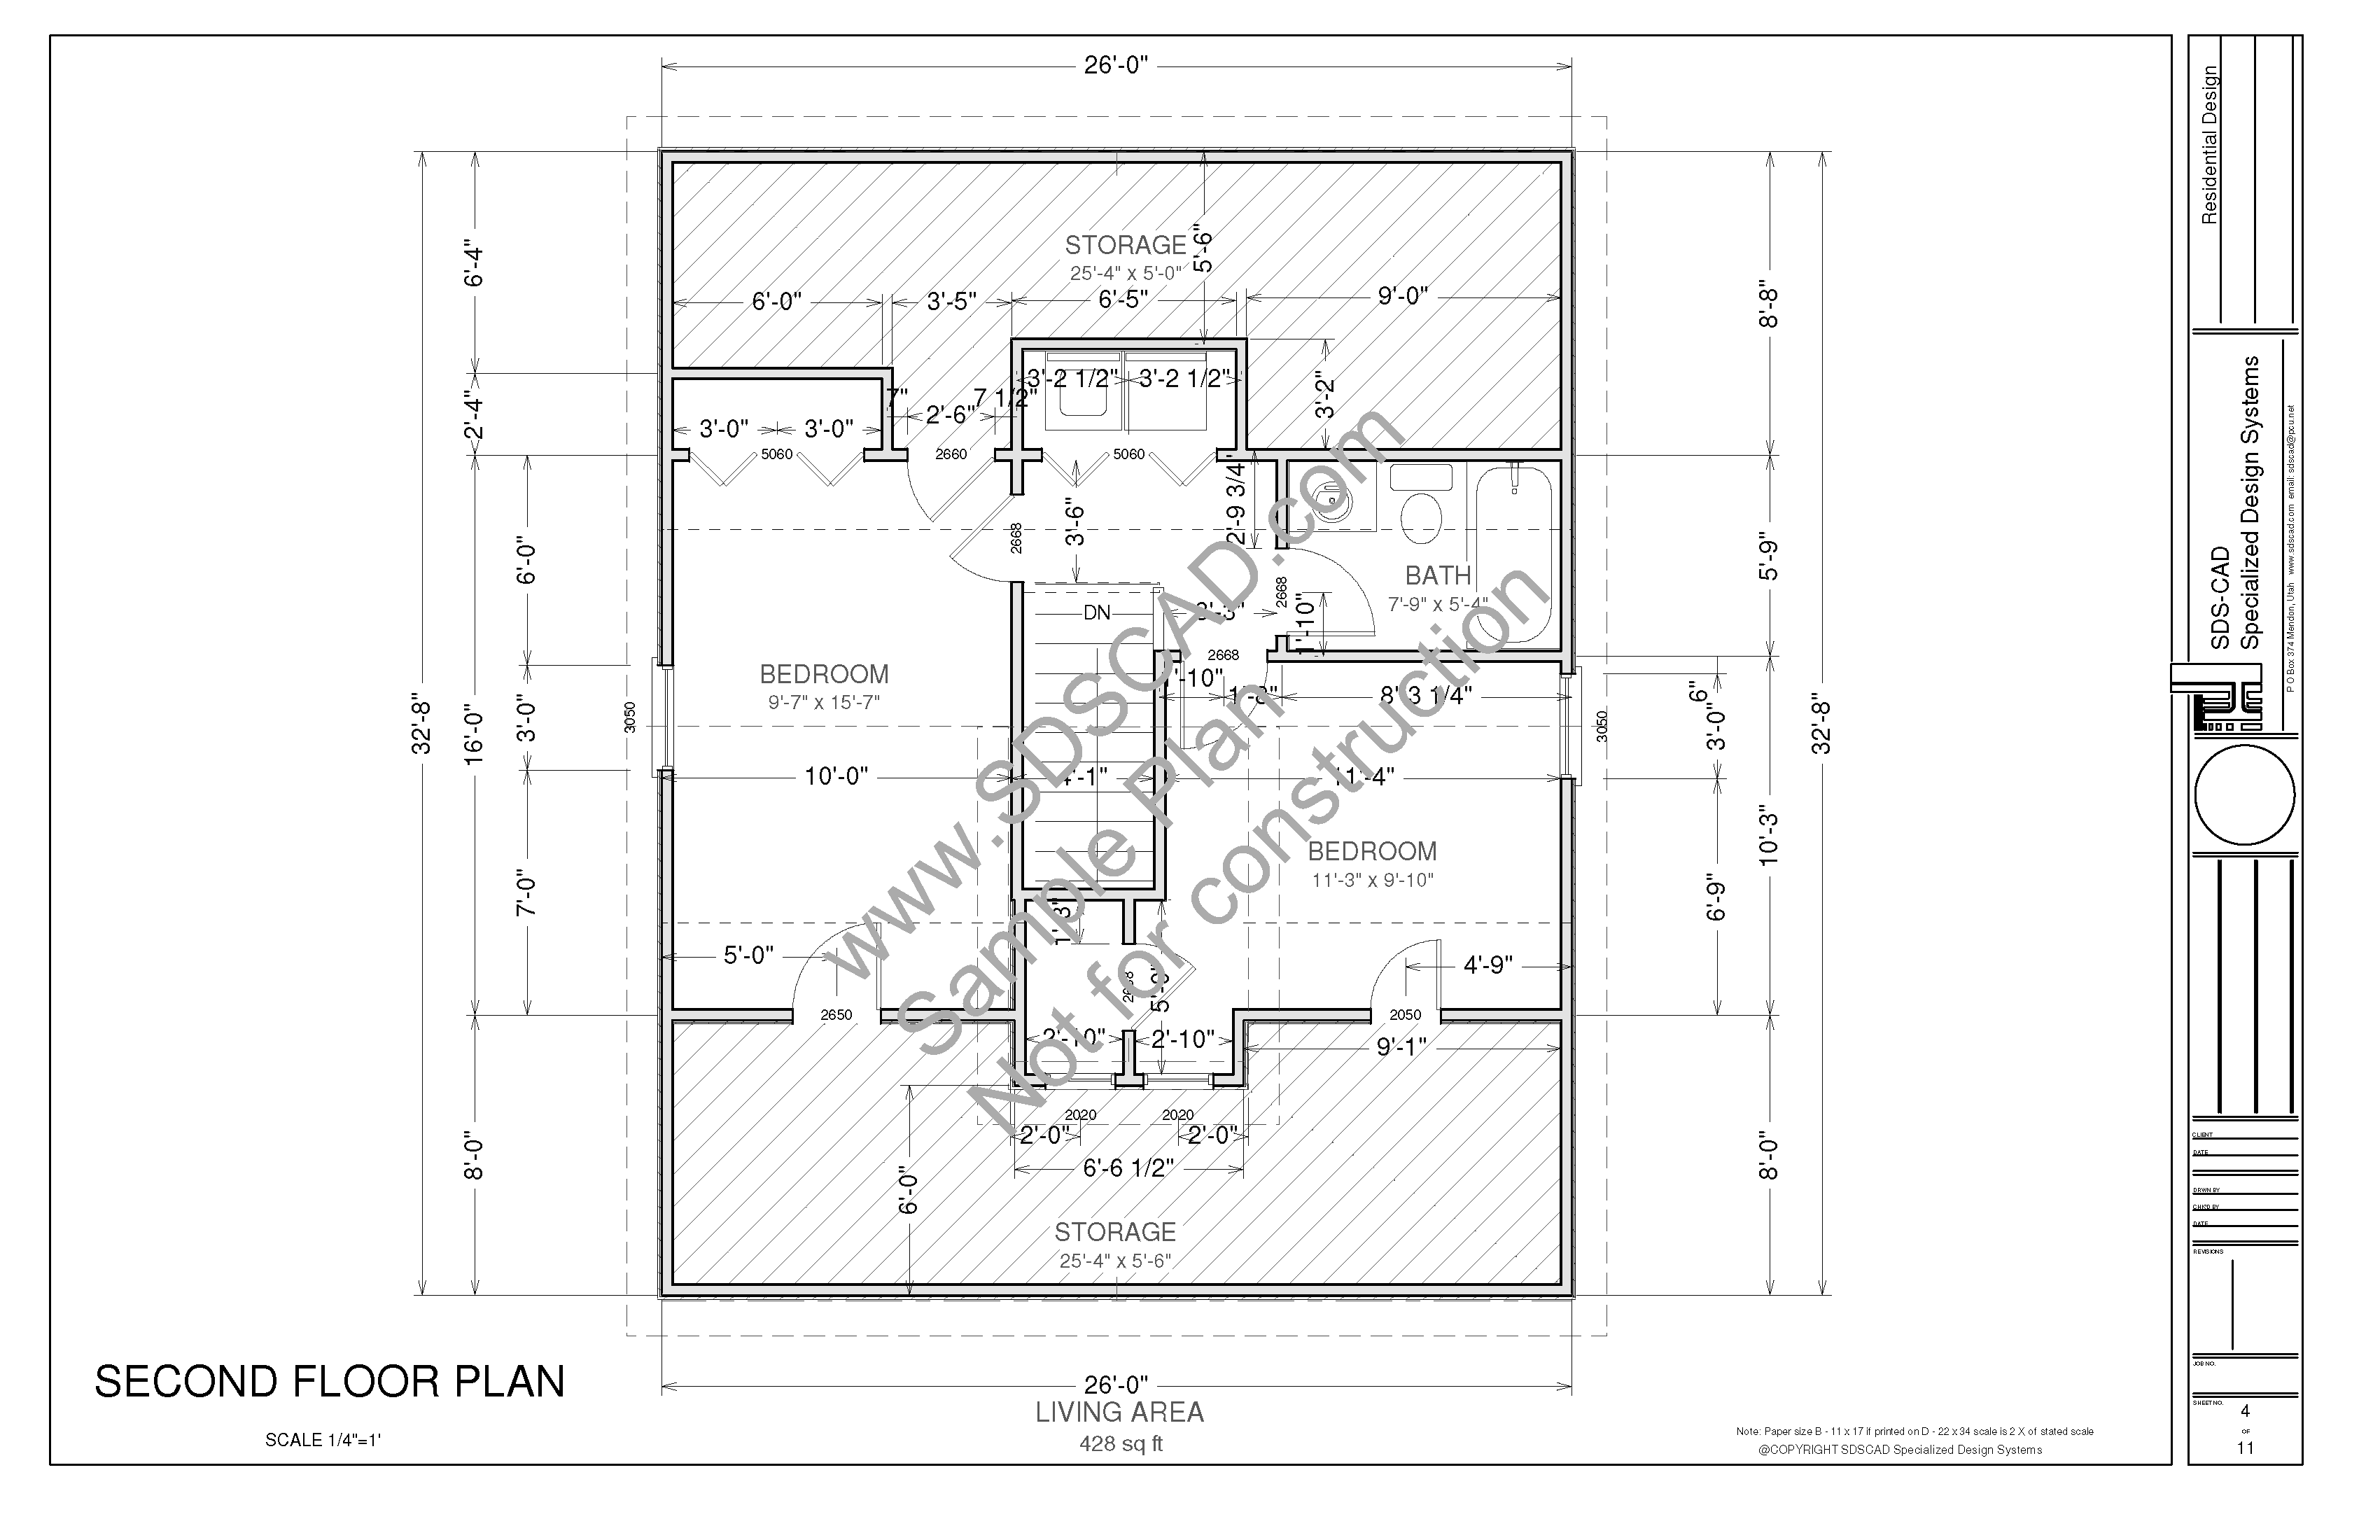 Cottage house plans 1100 sq ft cottage house plans one for 1100 sq ft house plans